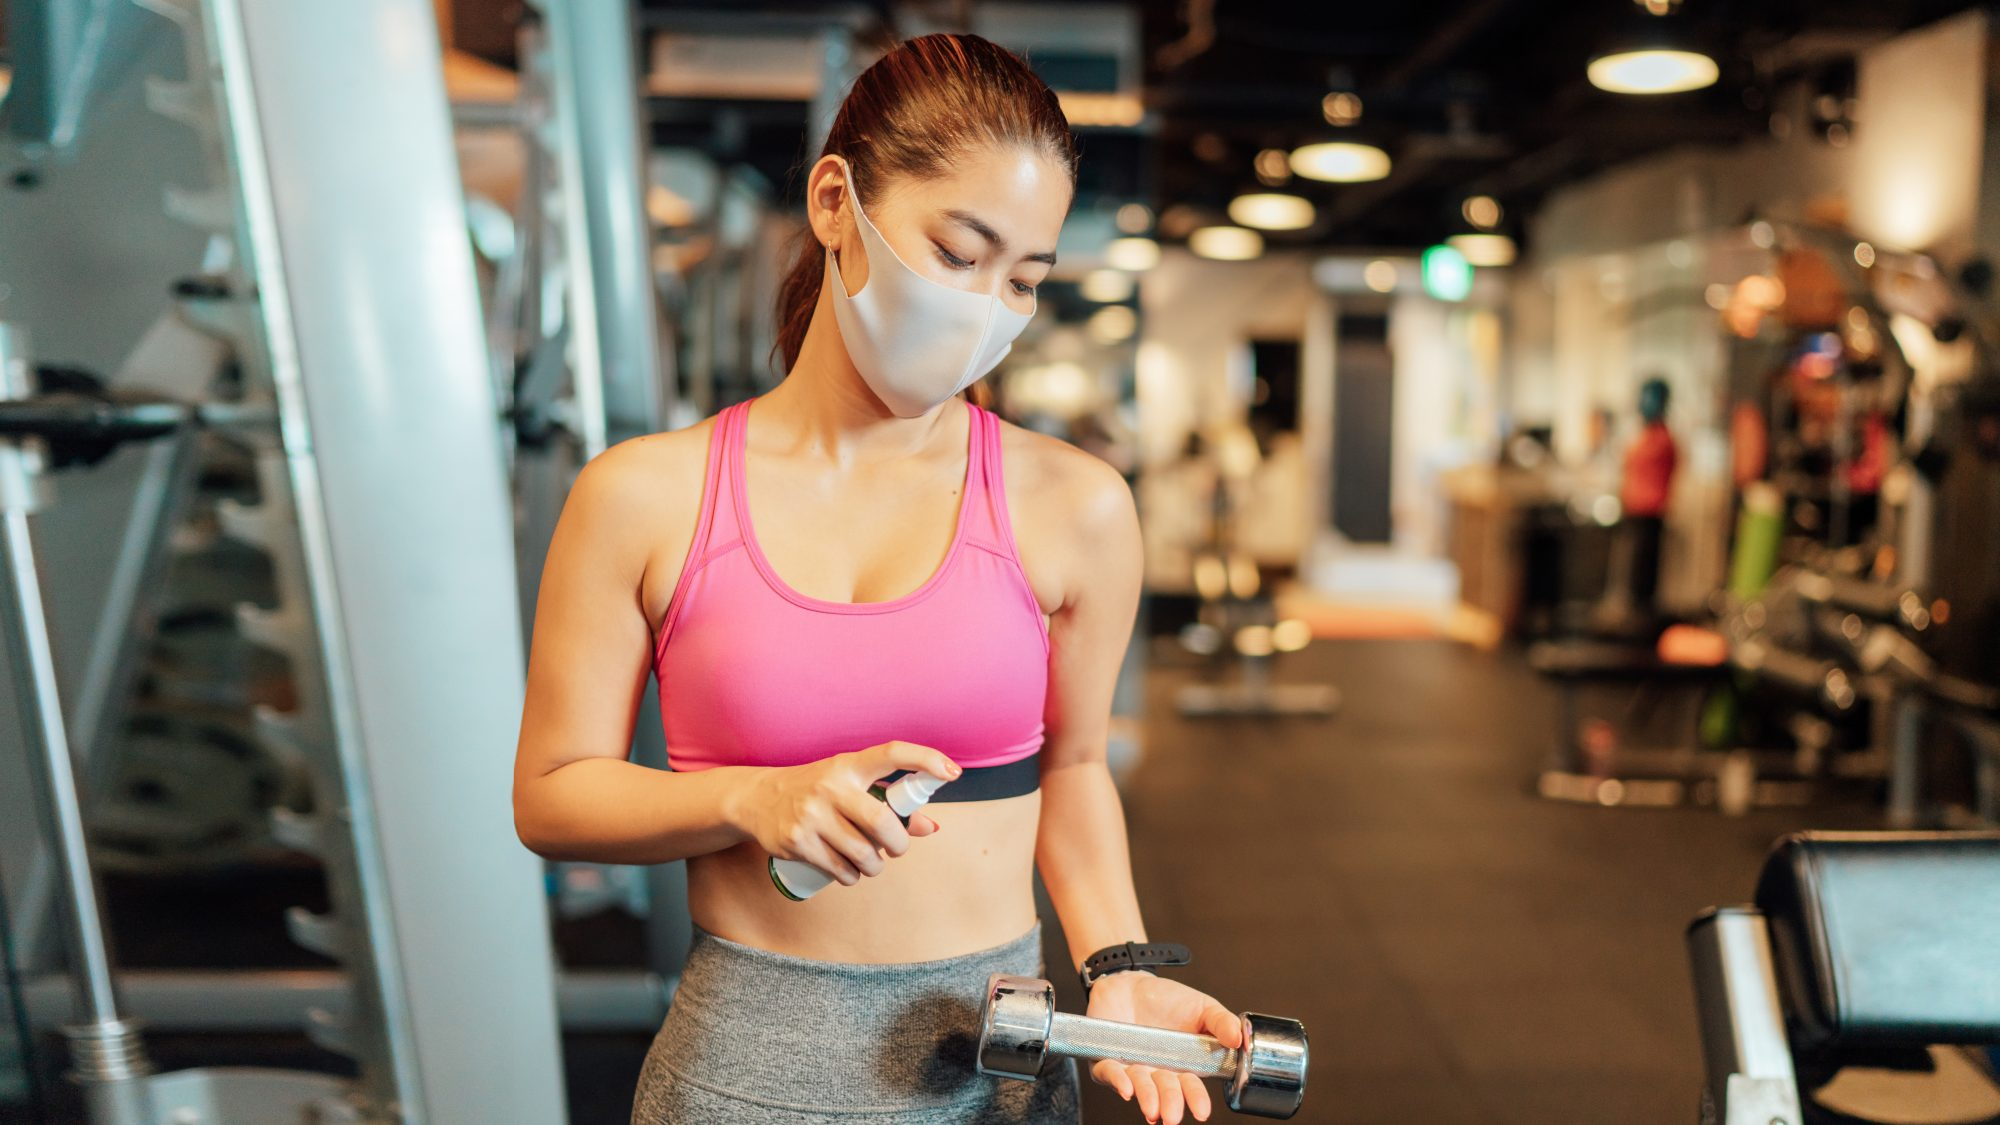 gym-safety-covid: woman at gym with mask and sanitizing equipment